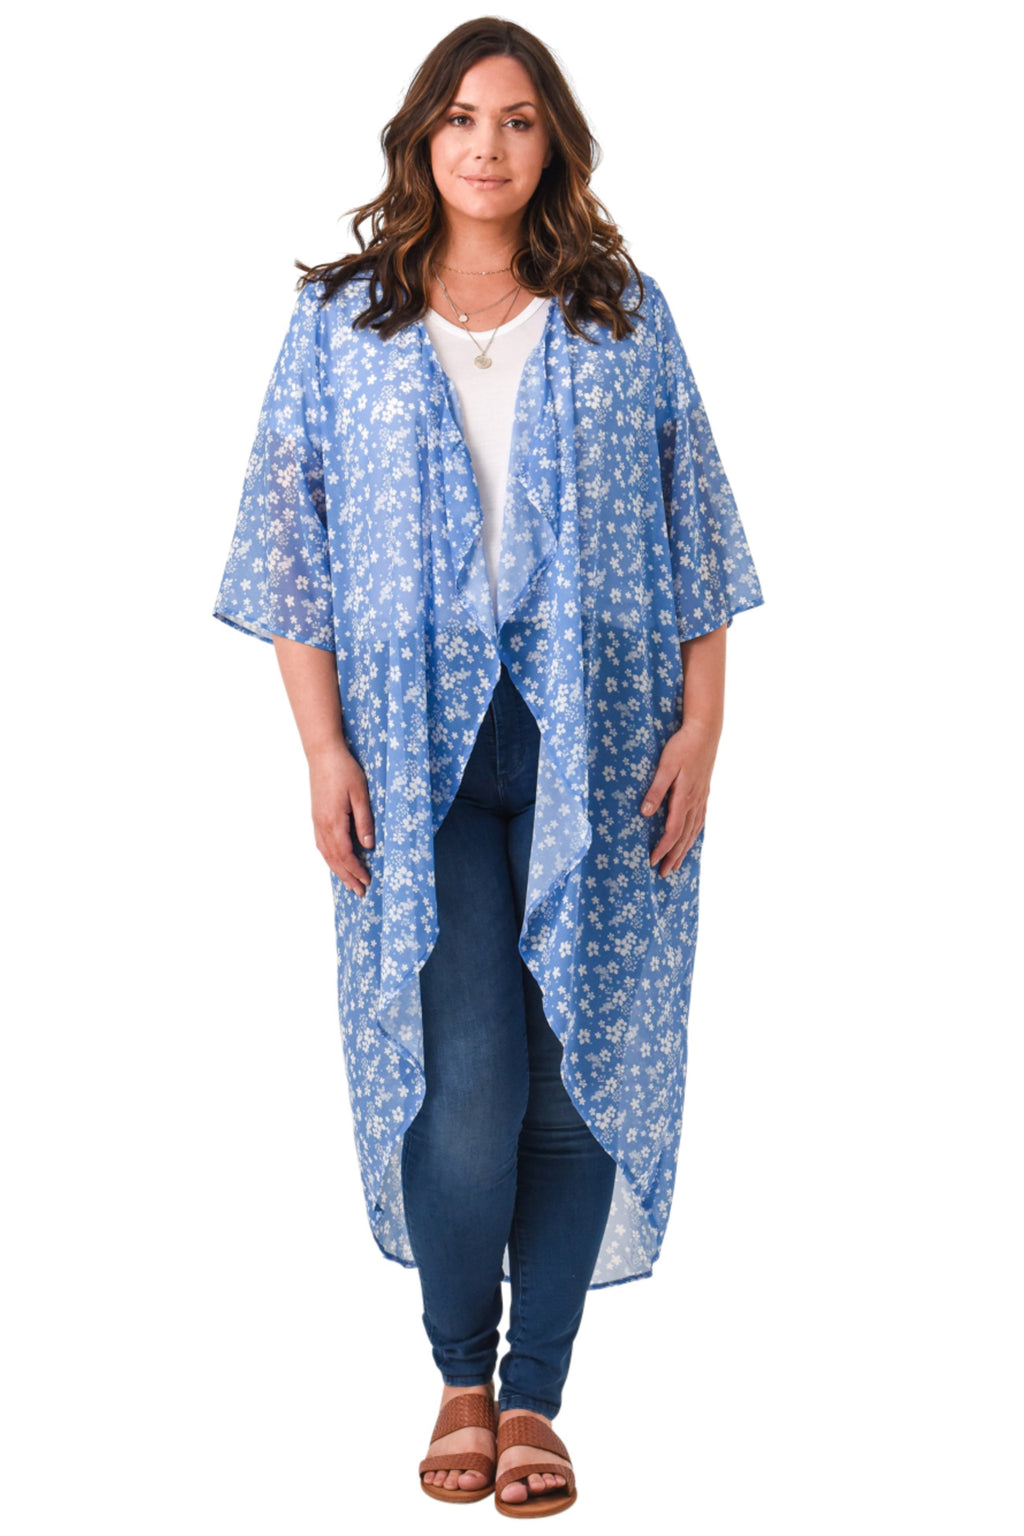 Blue Floral Kimono - Curvy Clothes Australia - Afterpay Laybuy & Humm Online